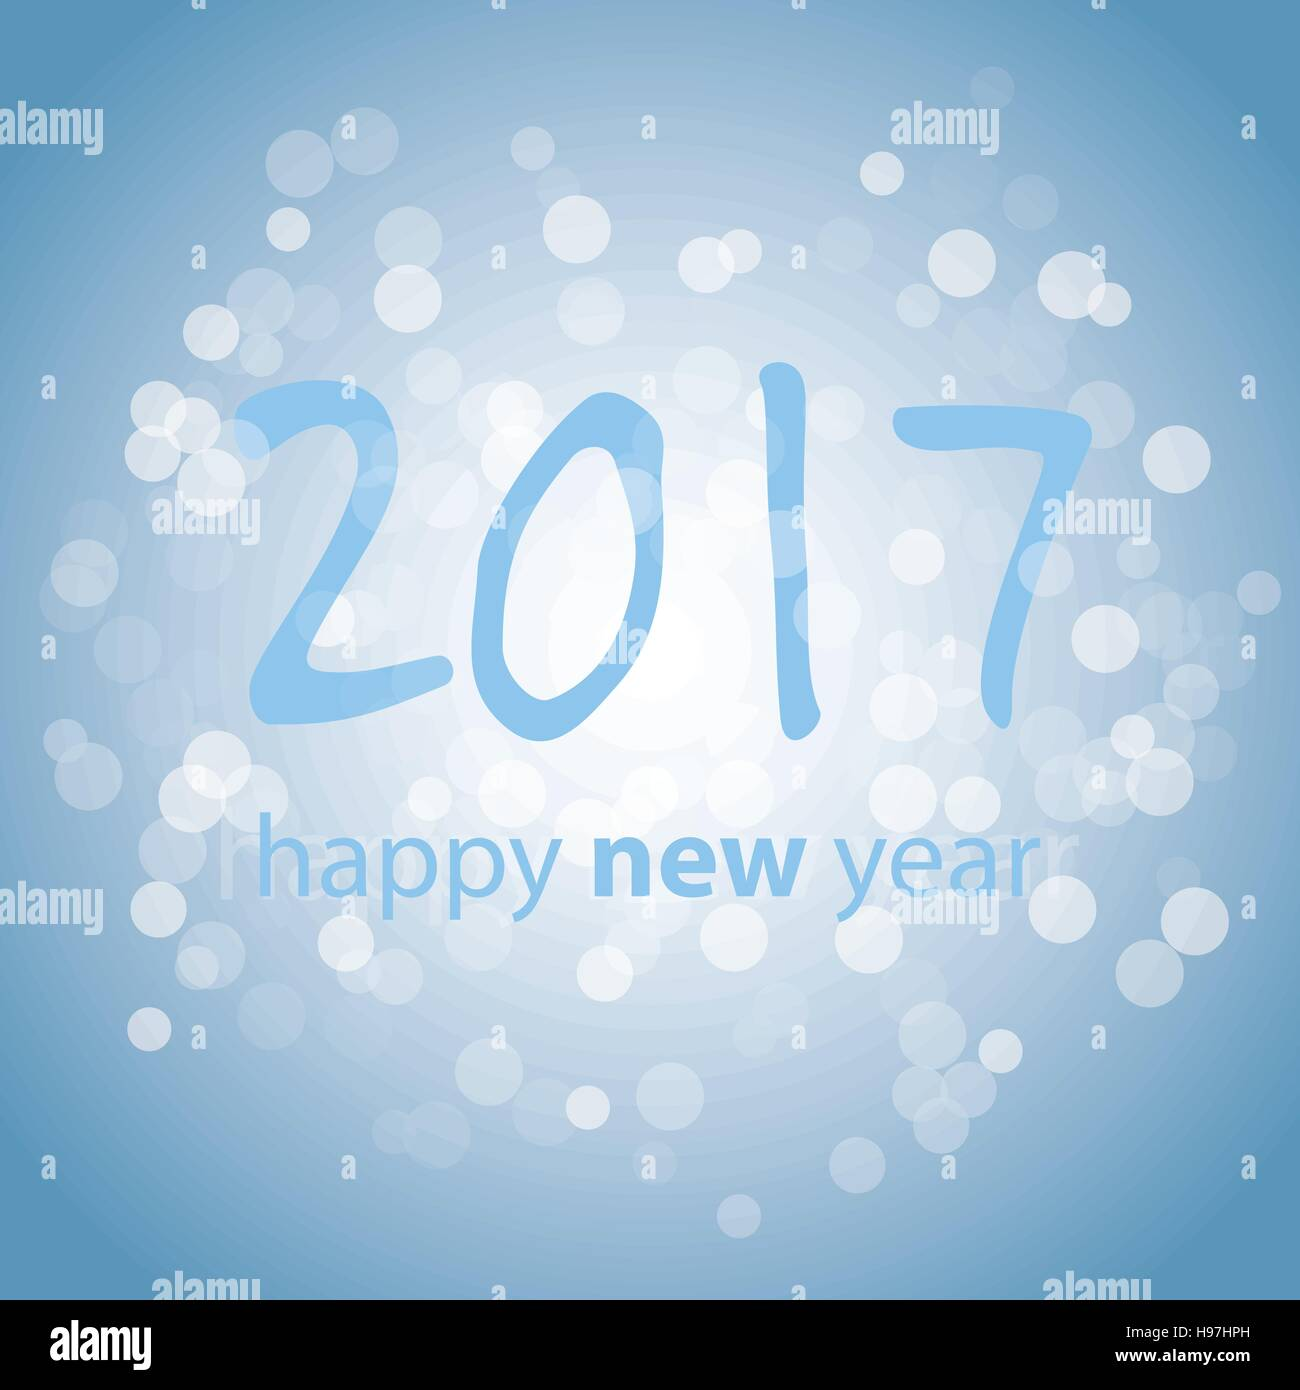 Best Wishes Blue Abstract Modern Style Happy New Year Greeting